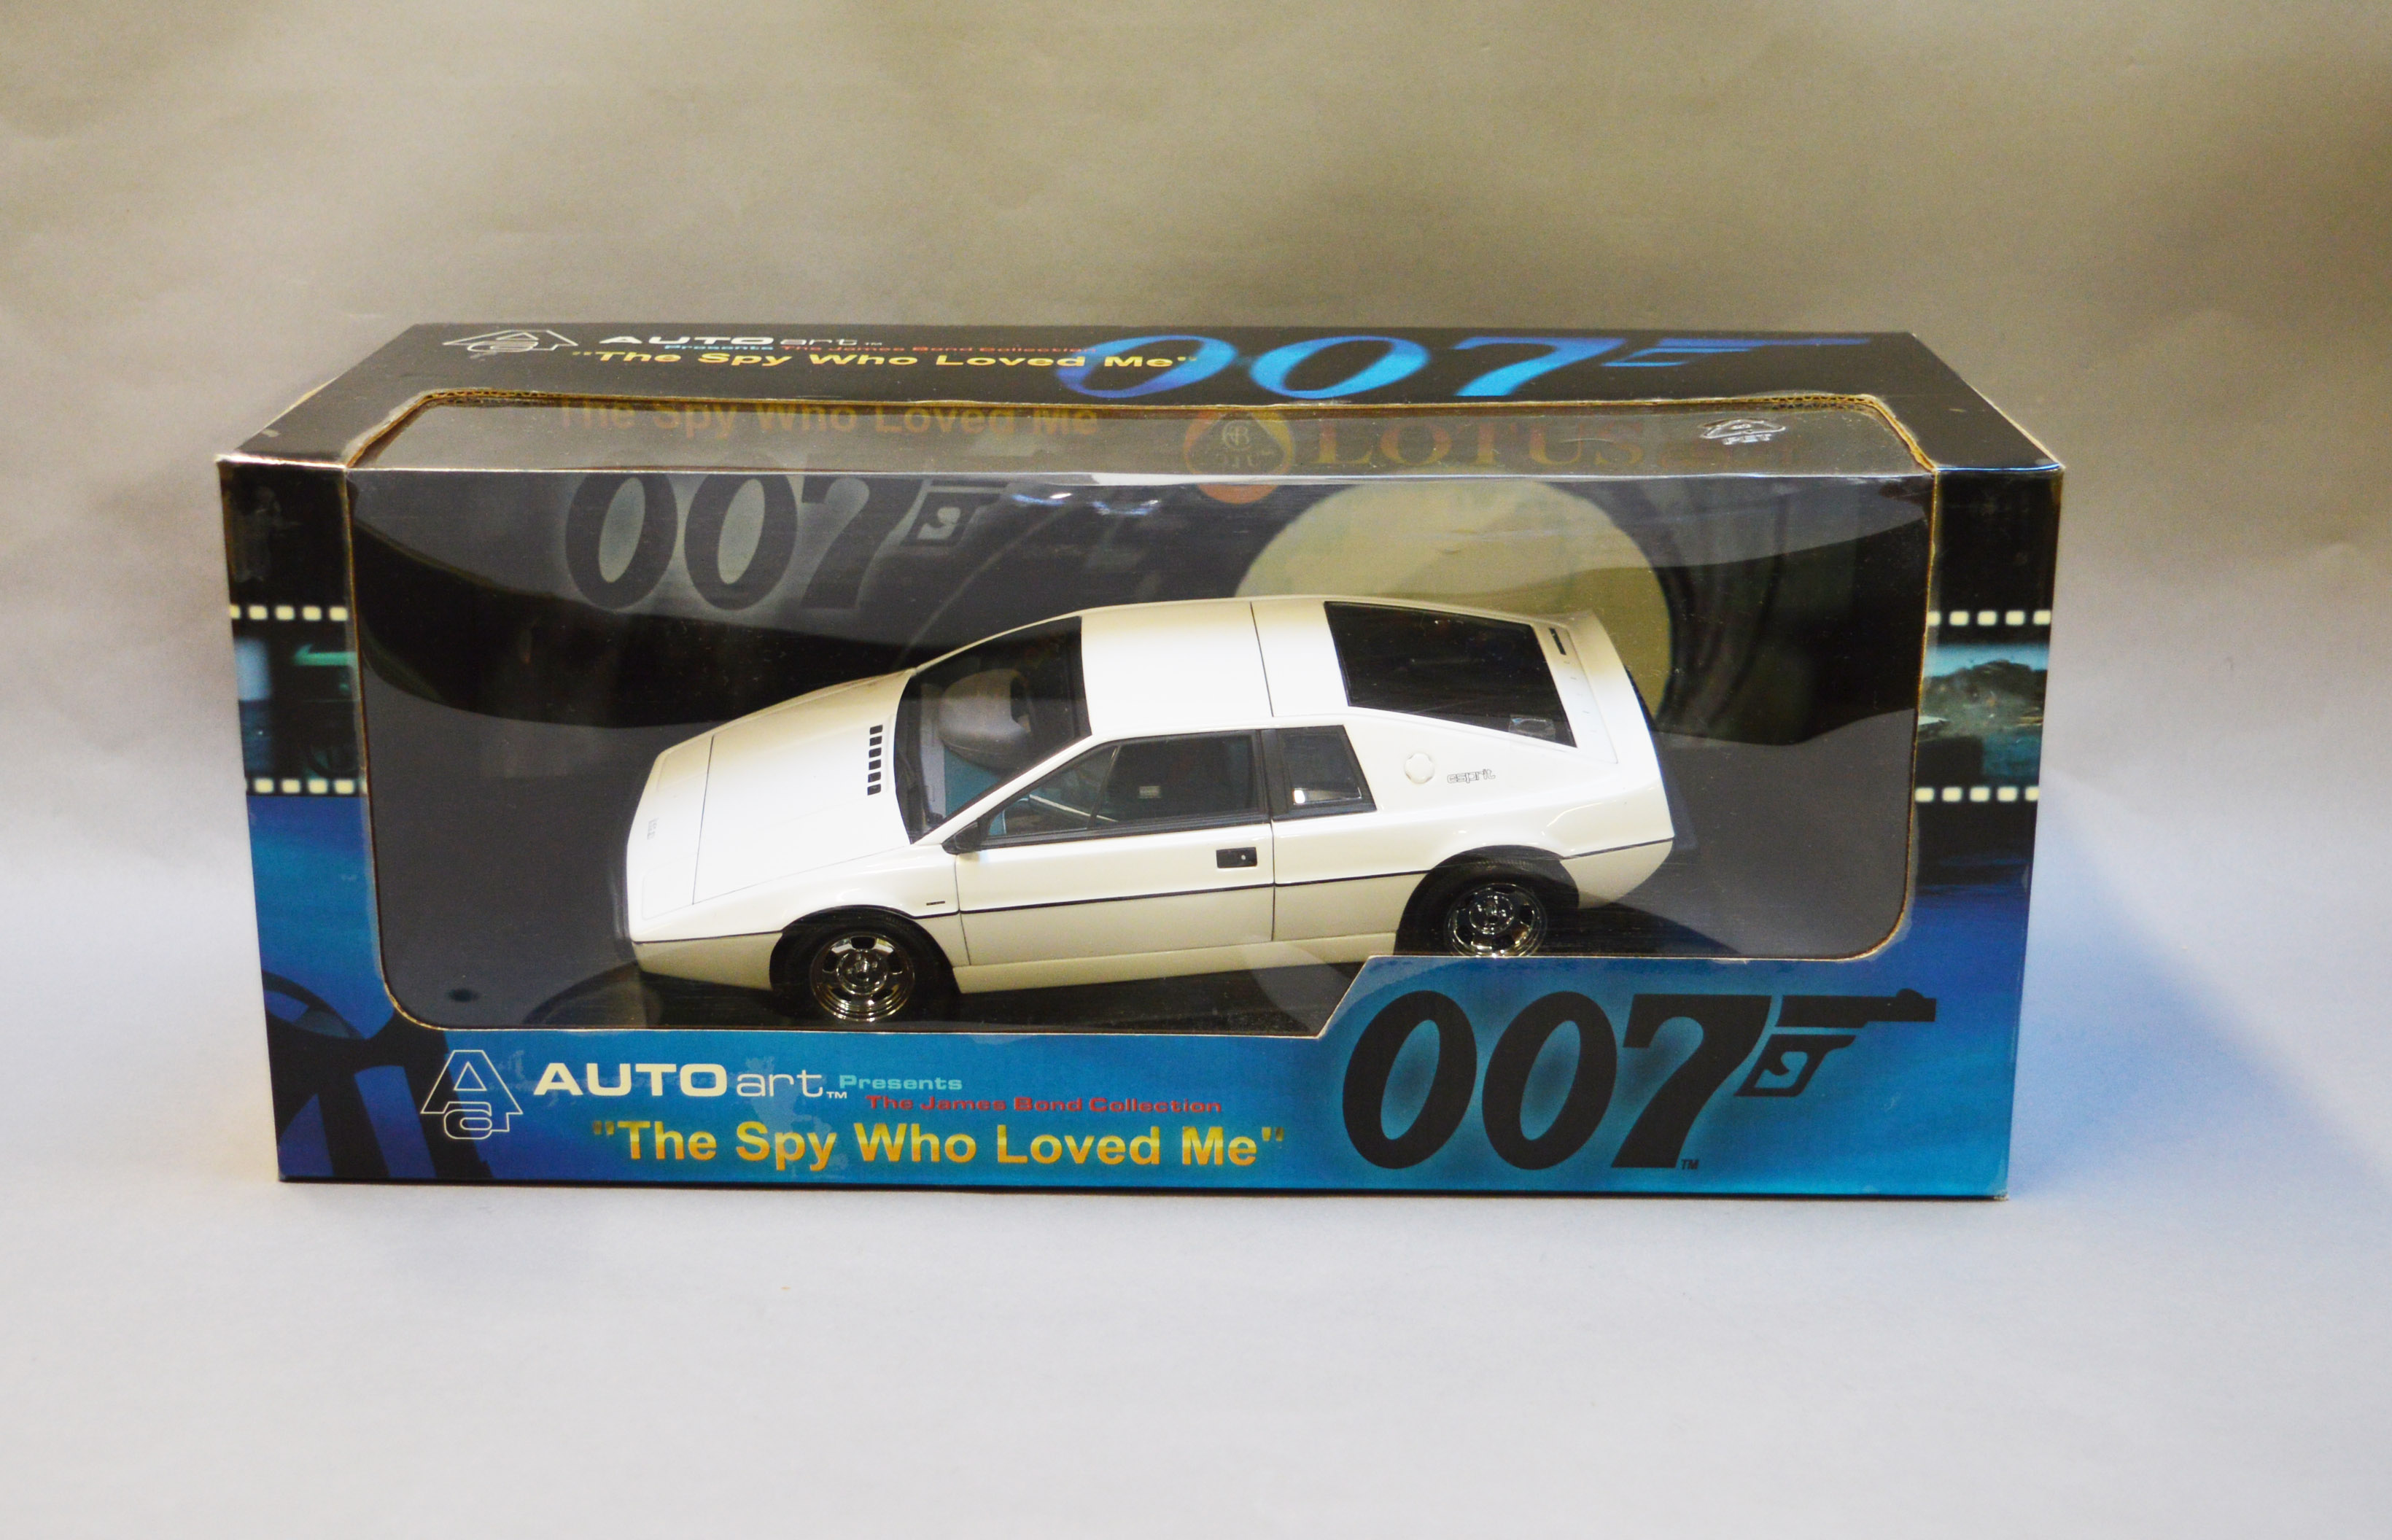 Lot 7 - James Bond 007. A boxed Autoart 1:18 scale Lotus Esprit S1, issued in 1999, modelled on the